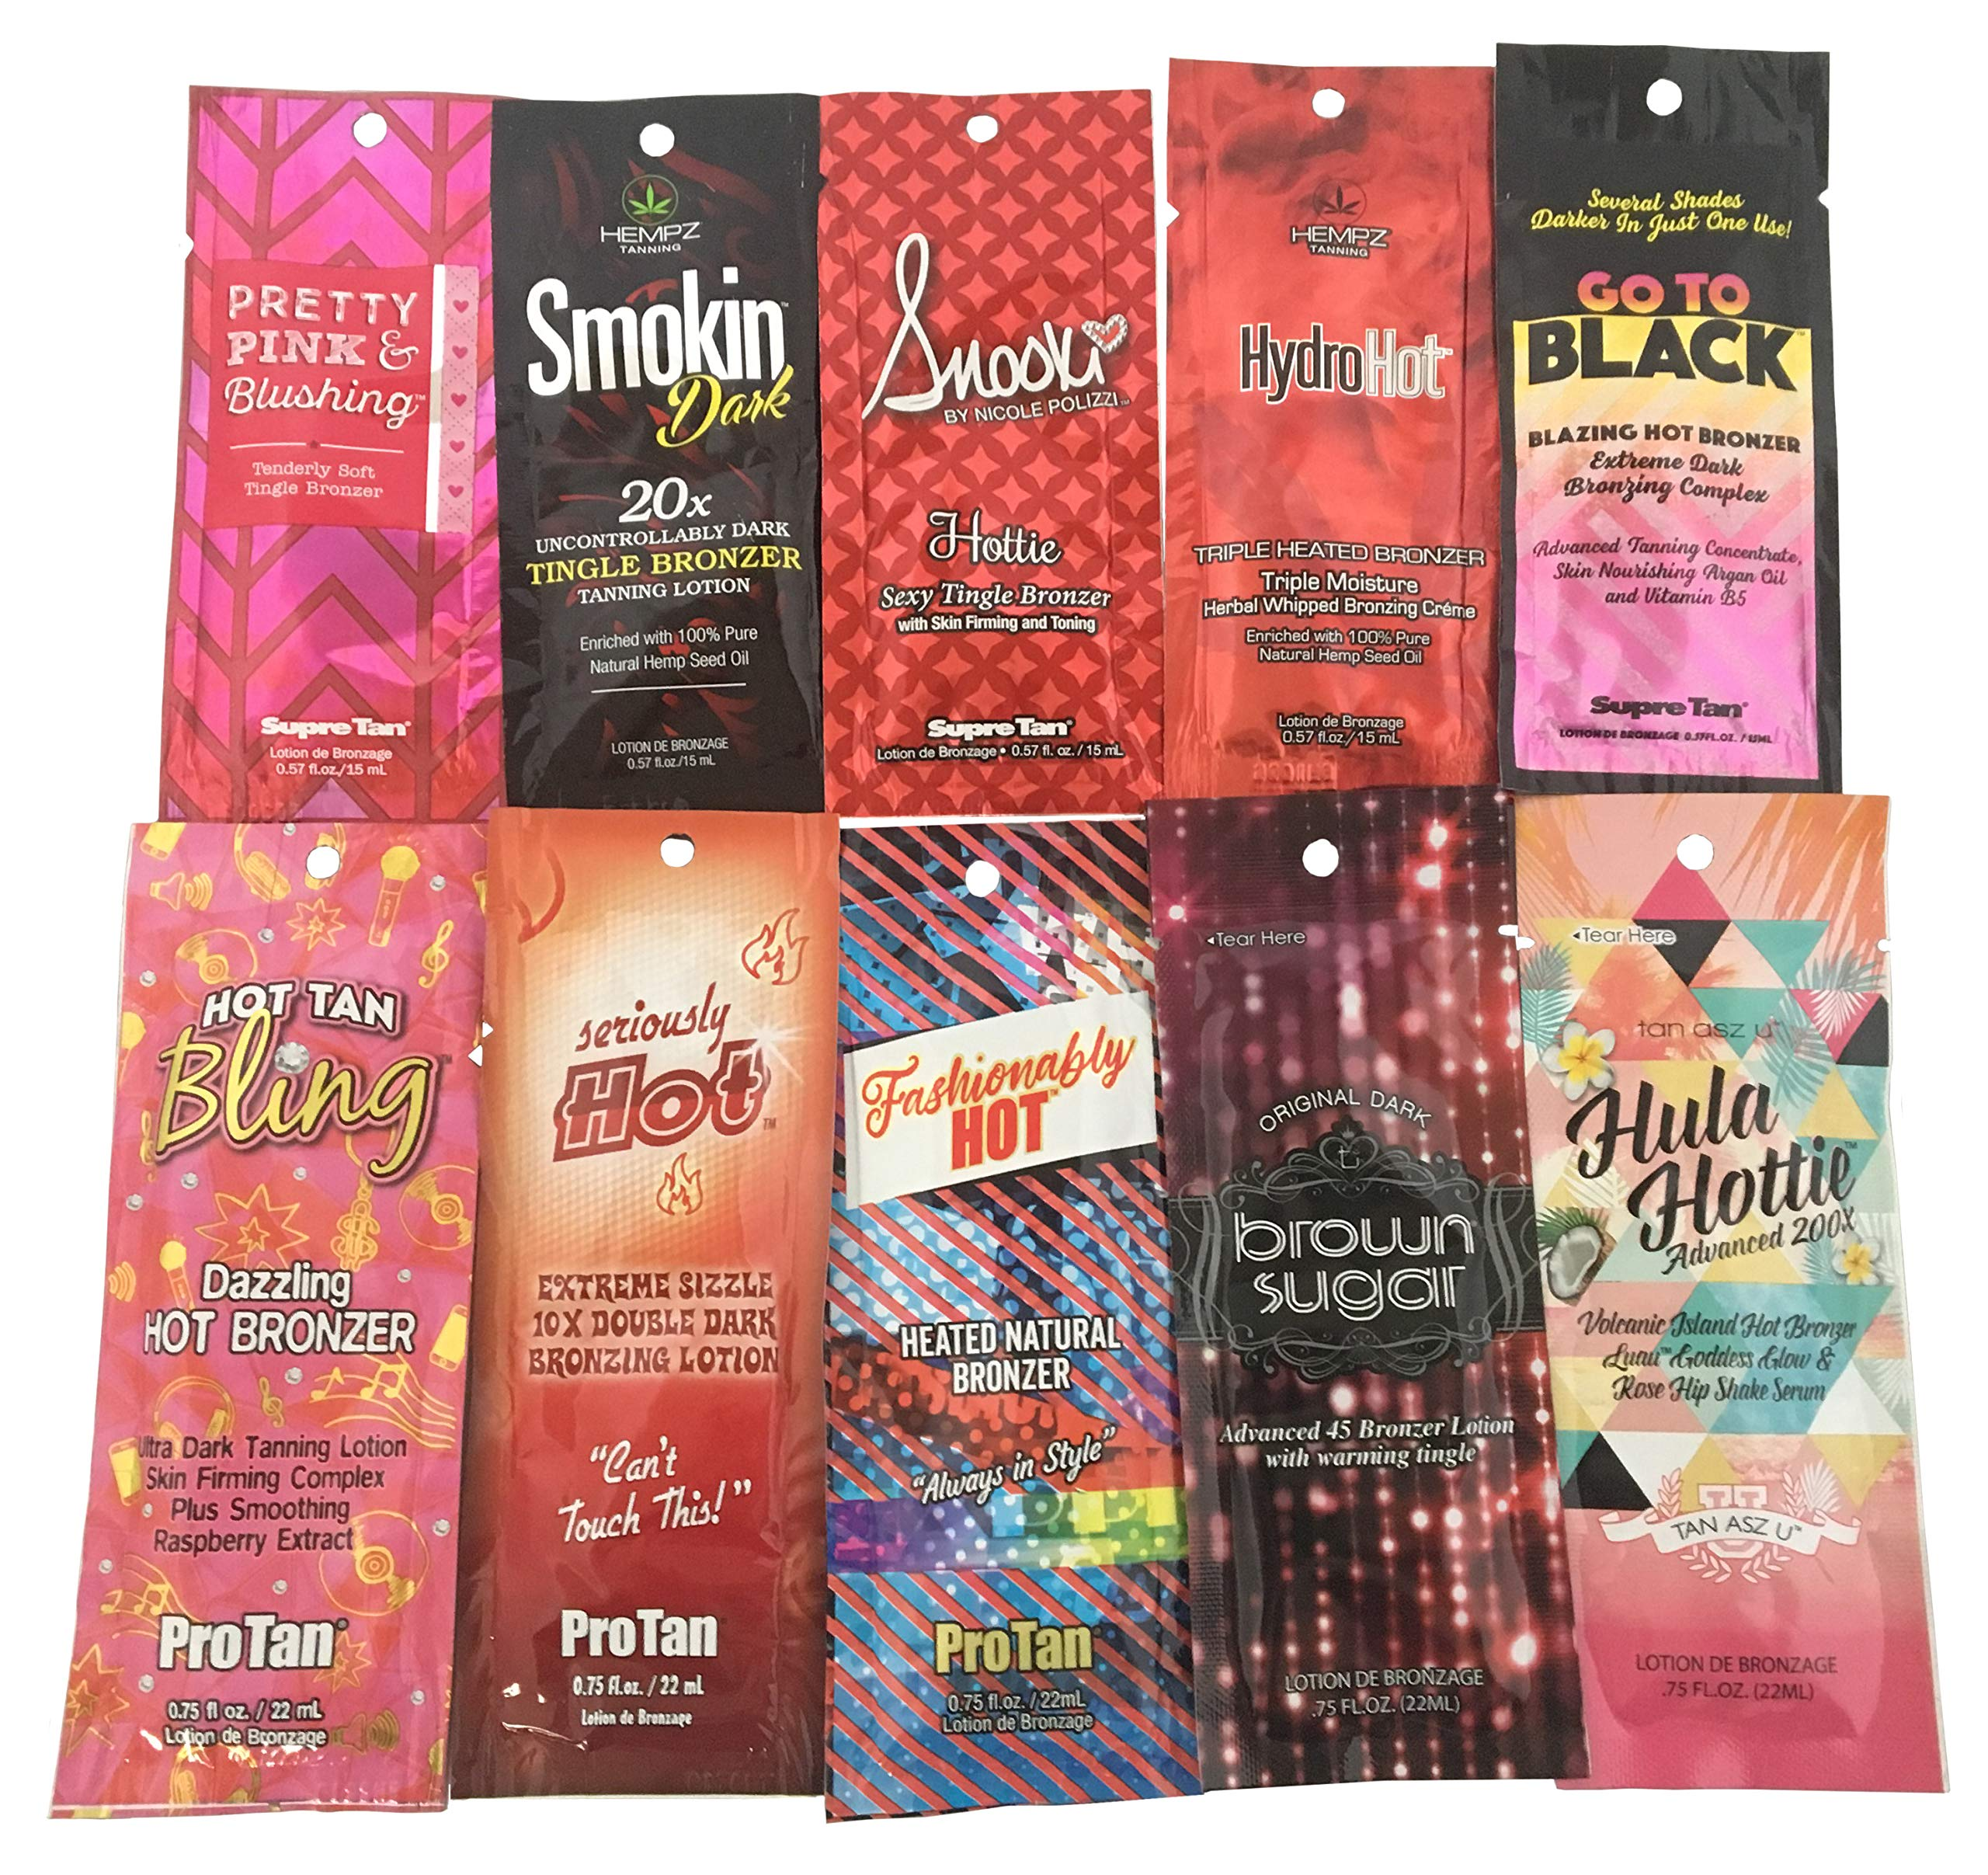 10 New Tingle Lovers Tanning Lotion Sample Packets - Hot Action Only - Assorted 10 Packettes by Premium Lotion